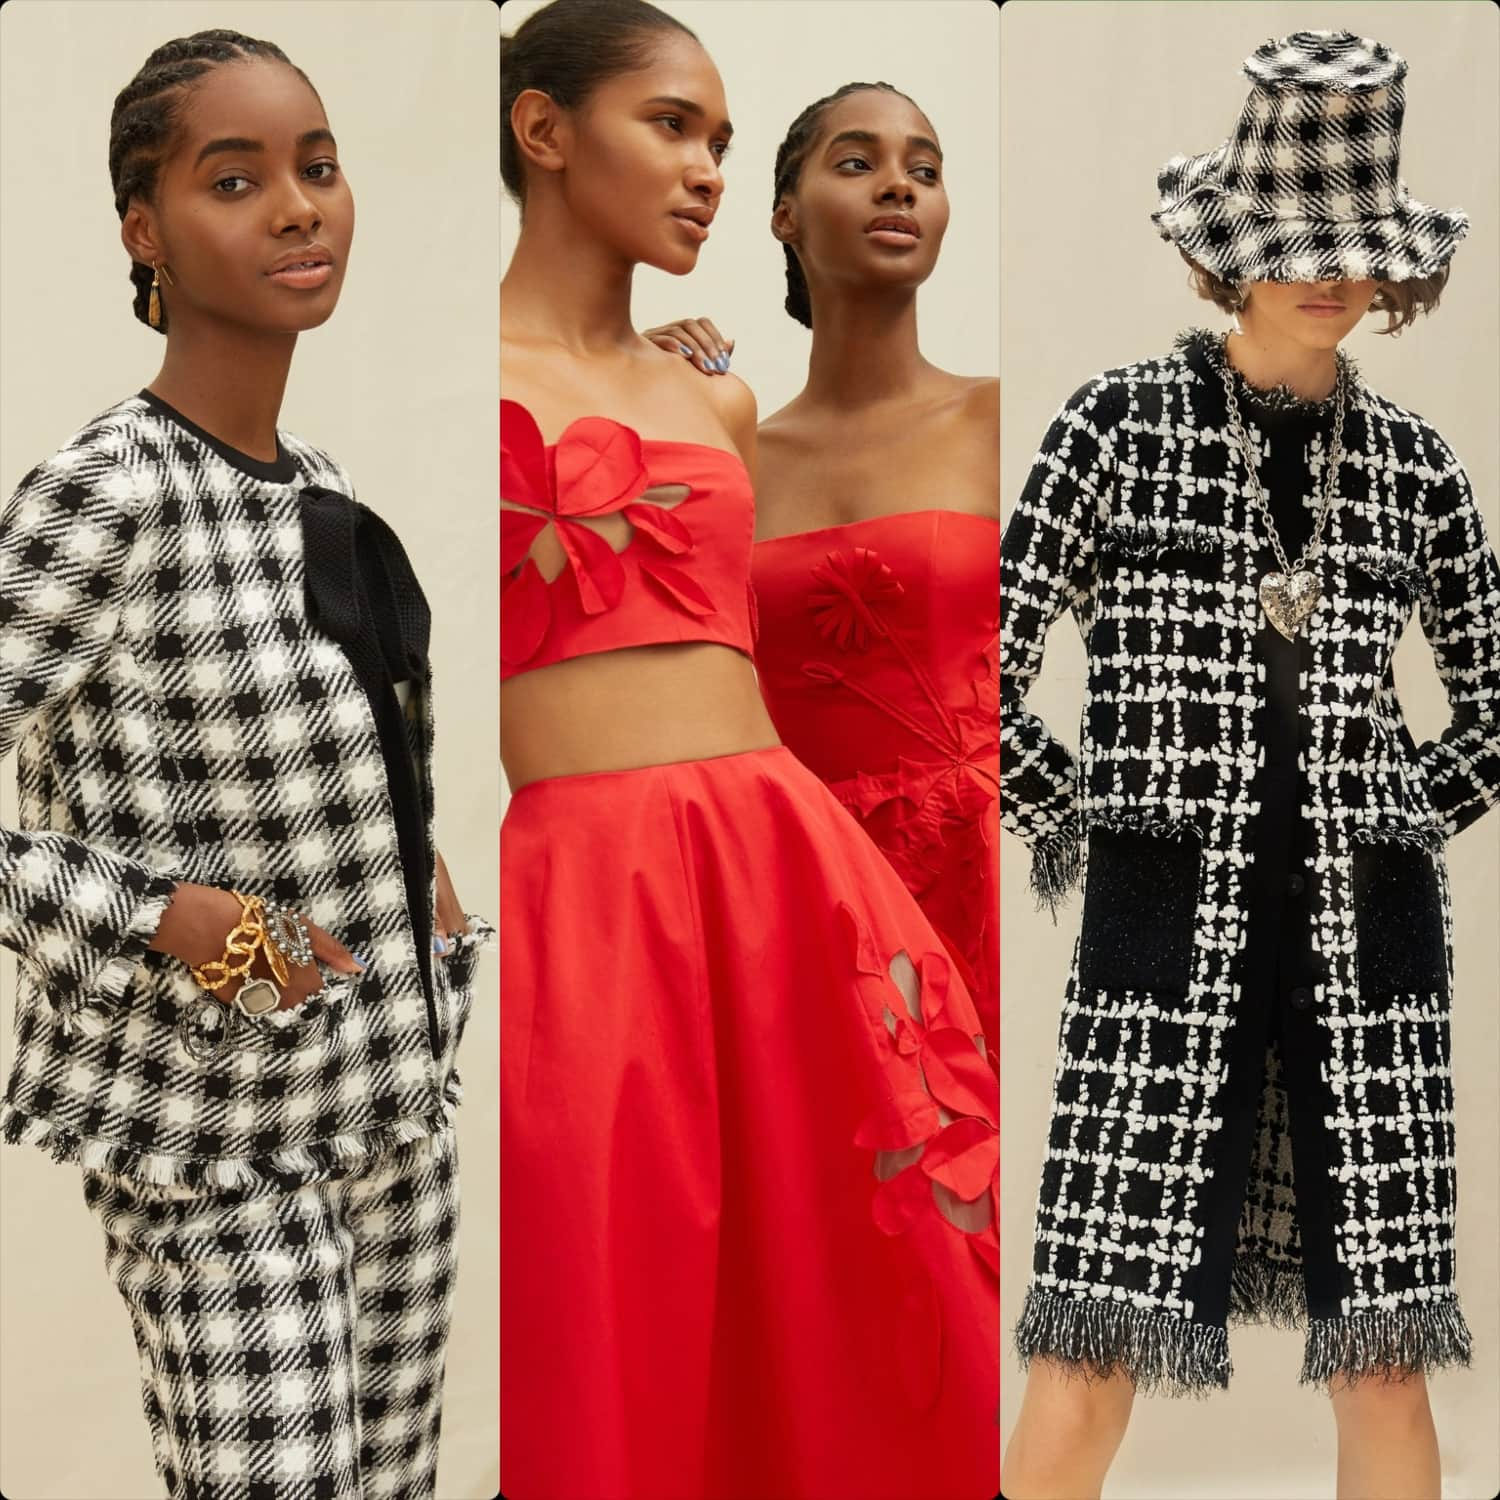 Oscar de la Renta Cruise 2021 Resort New York. RUNWAY MAGAZINE ® Collections. RUNWAY NOW / RUNWAY NEW